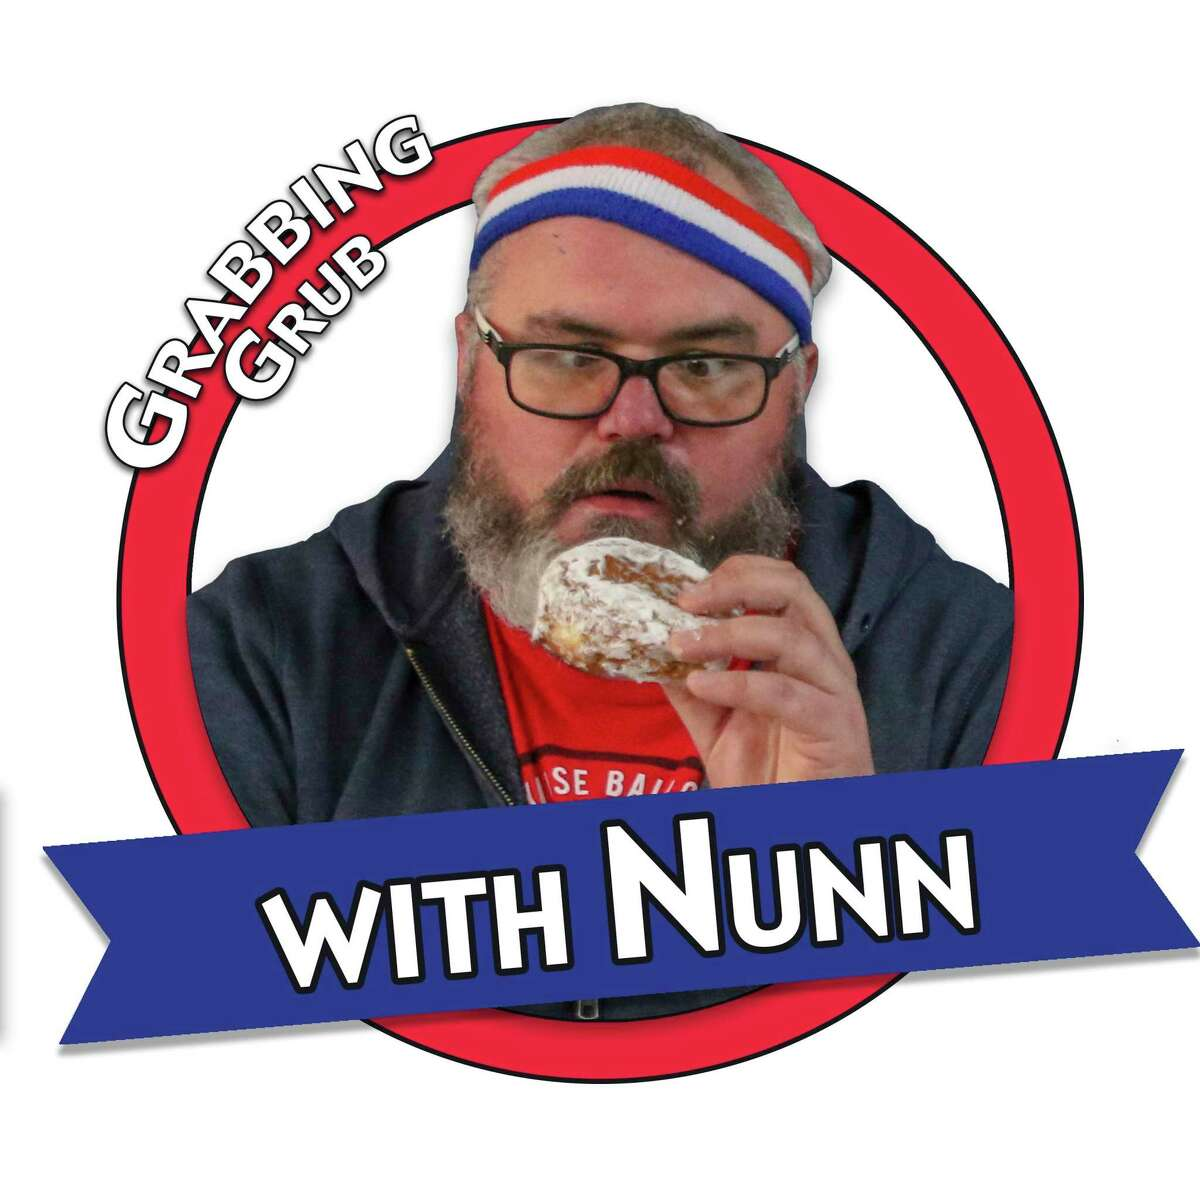 Grabbing Grub with Nunn is published bi-weekly and takes readers on a trip to various dining options in Huron County, Michigan.